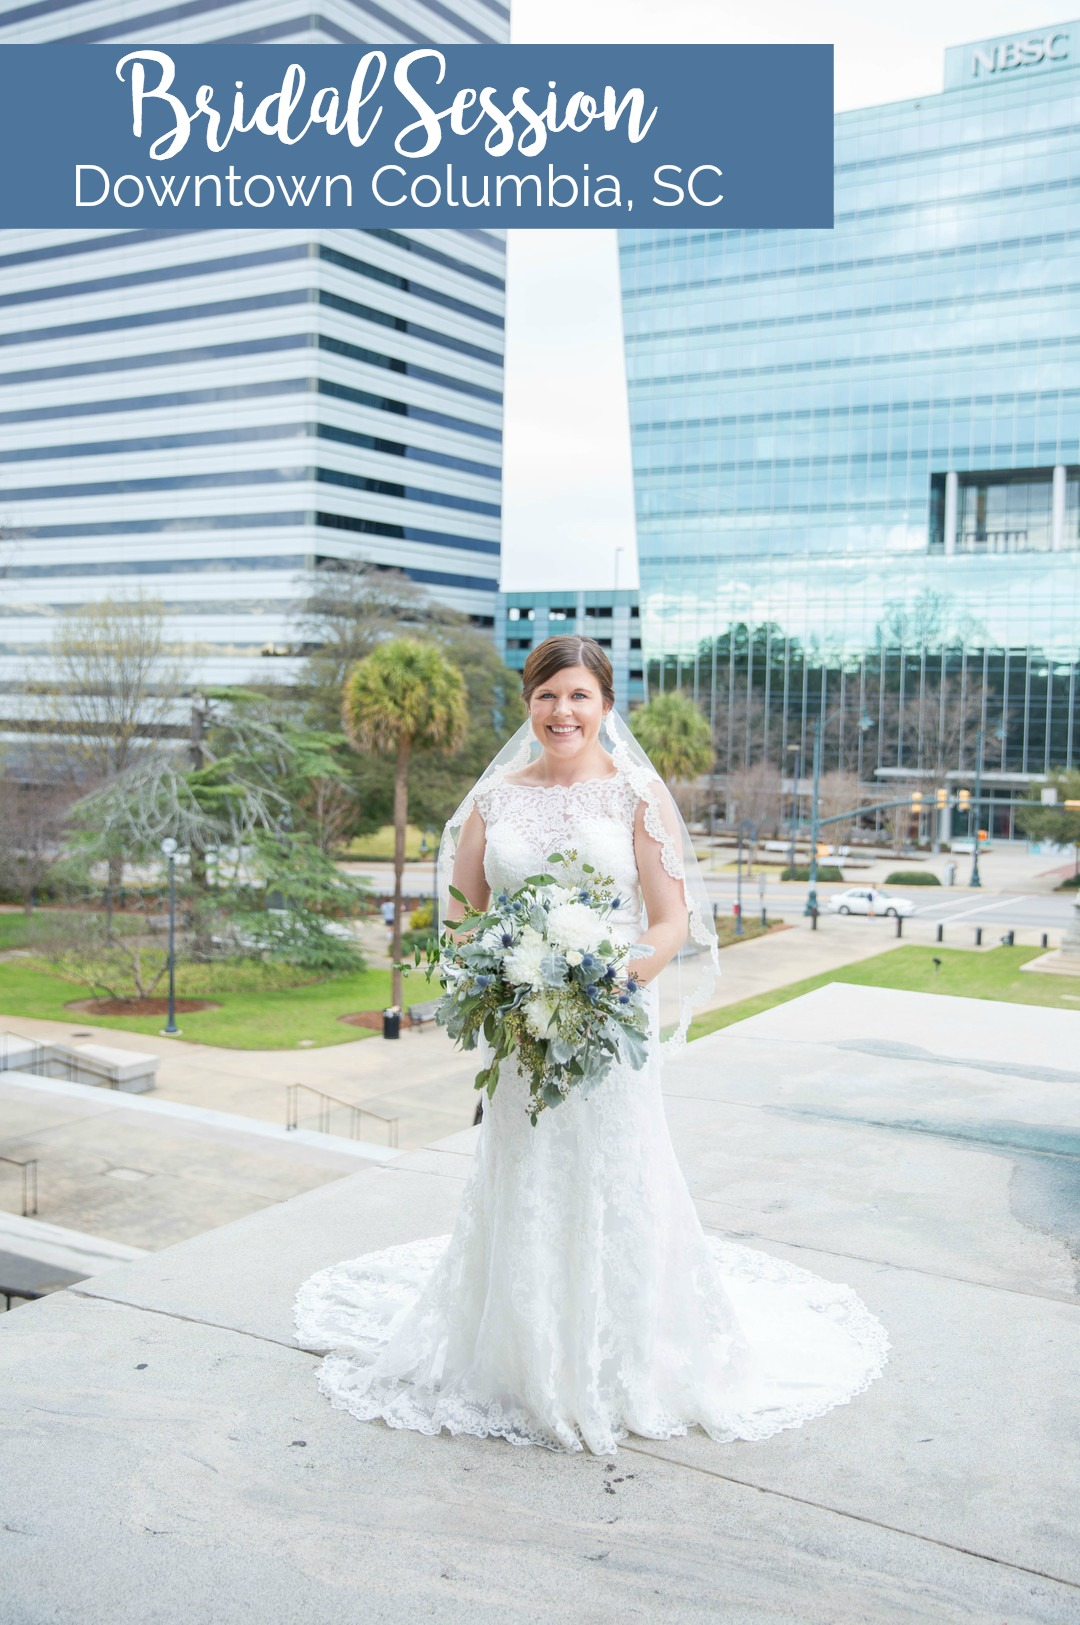 Ali's Bridal Portraits at the South Carolina State House | Palmetto State Weddings | Katie Jaynes Photography | Columbia SC wedding | Southern bride portrait